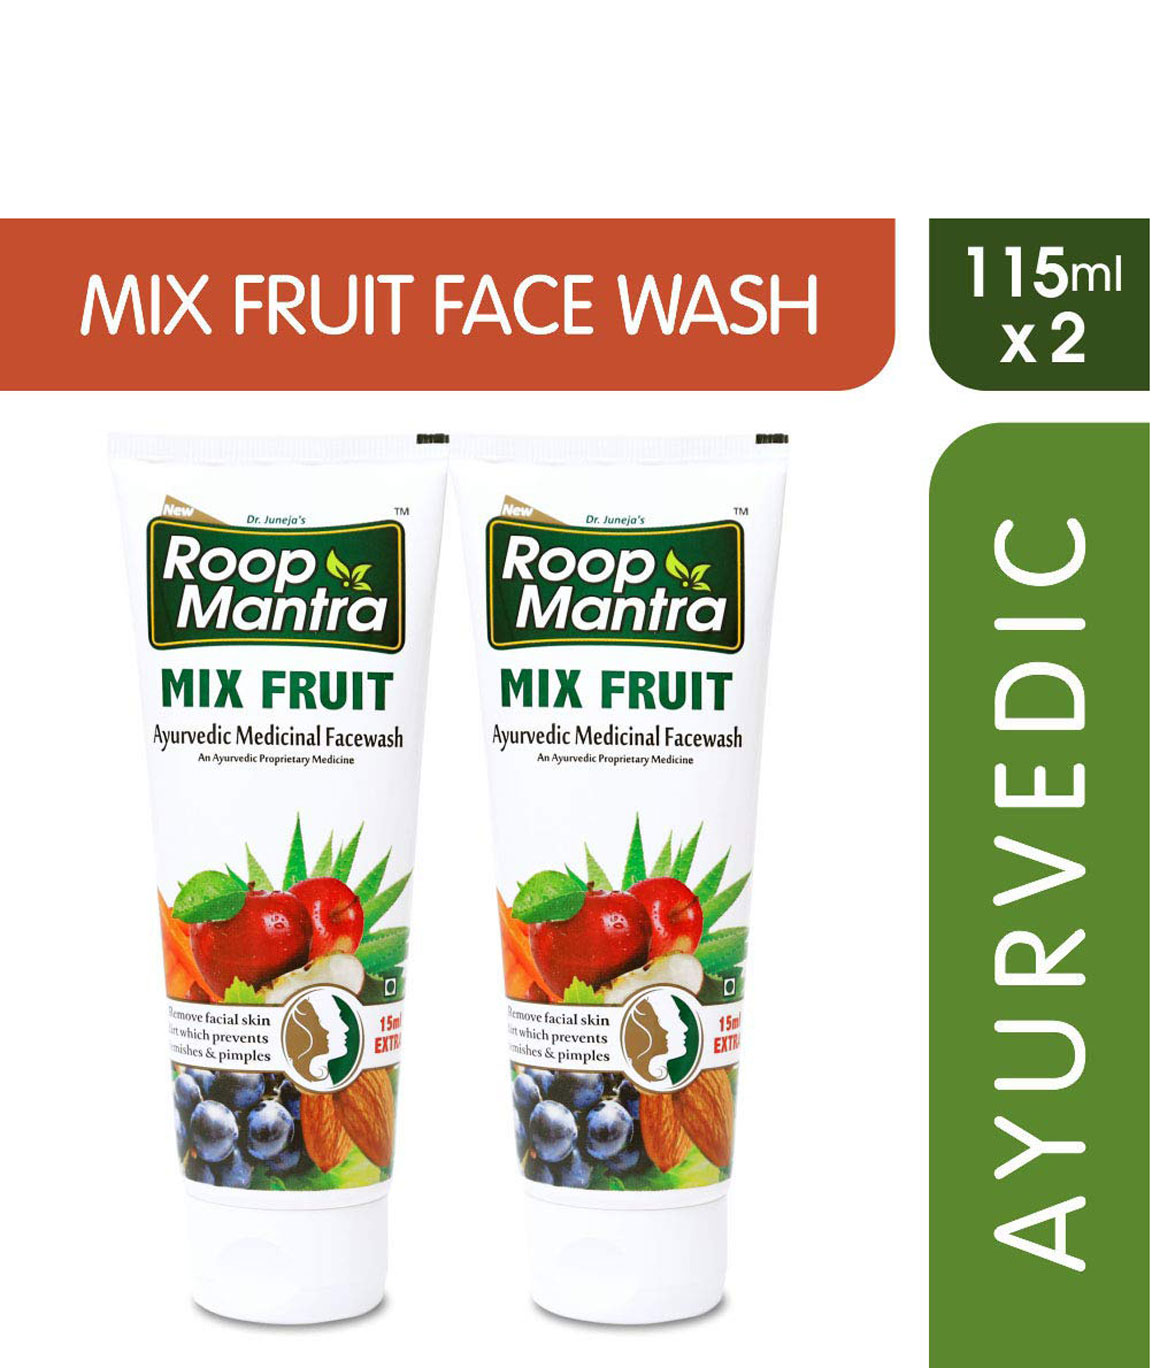 Roop Mantra Mix Fruit Face Wash, 115ml (Pack of 2)